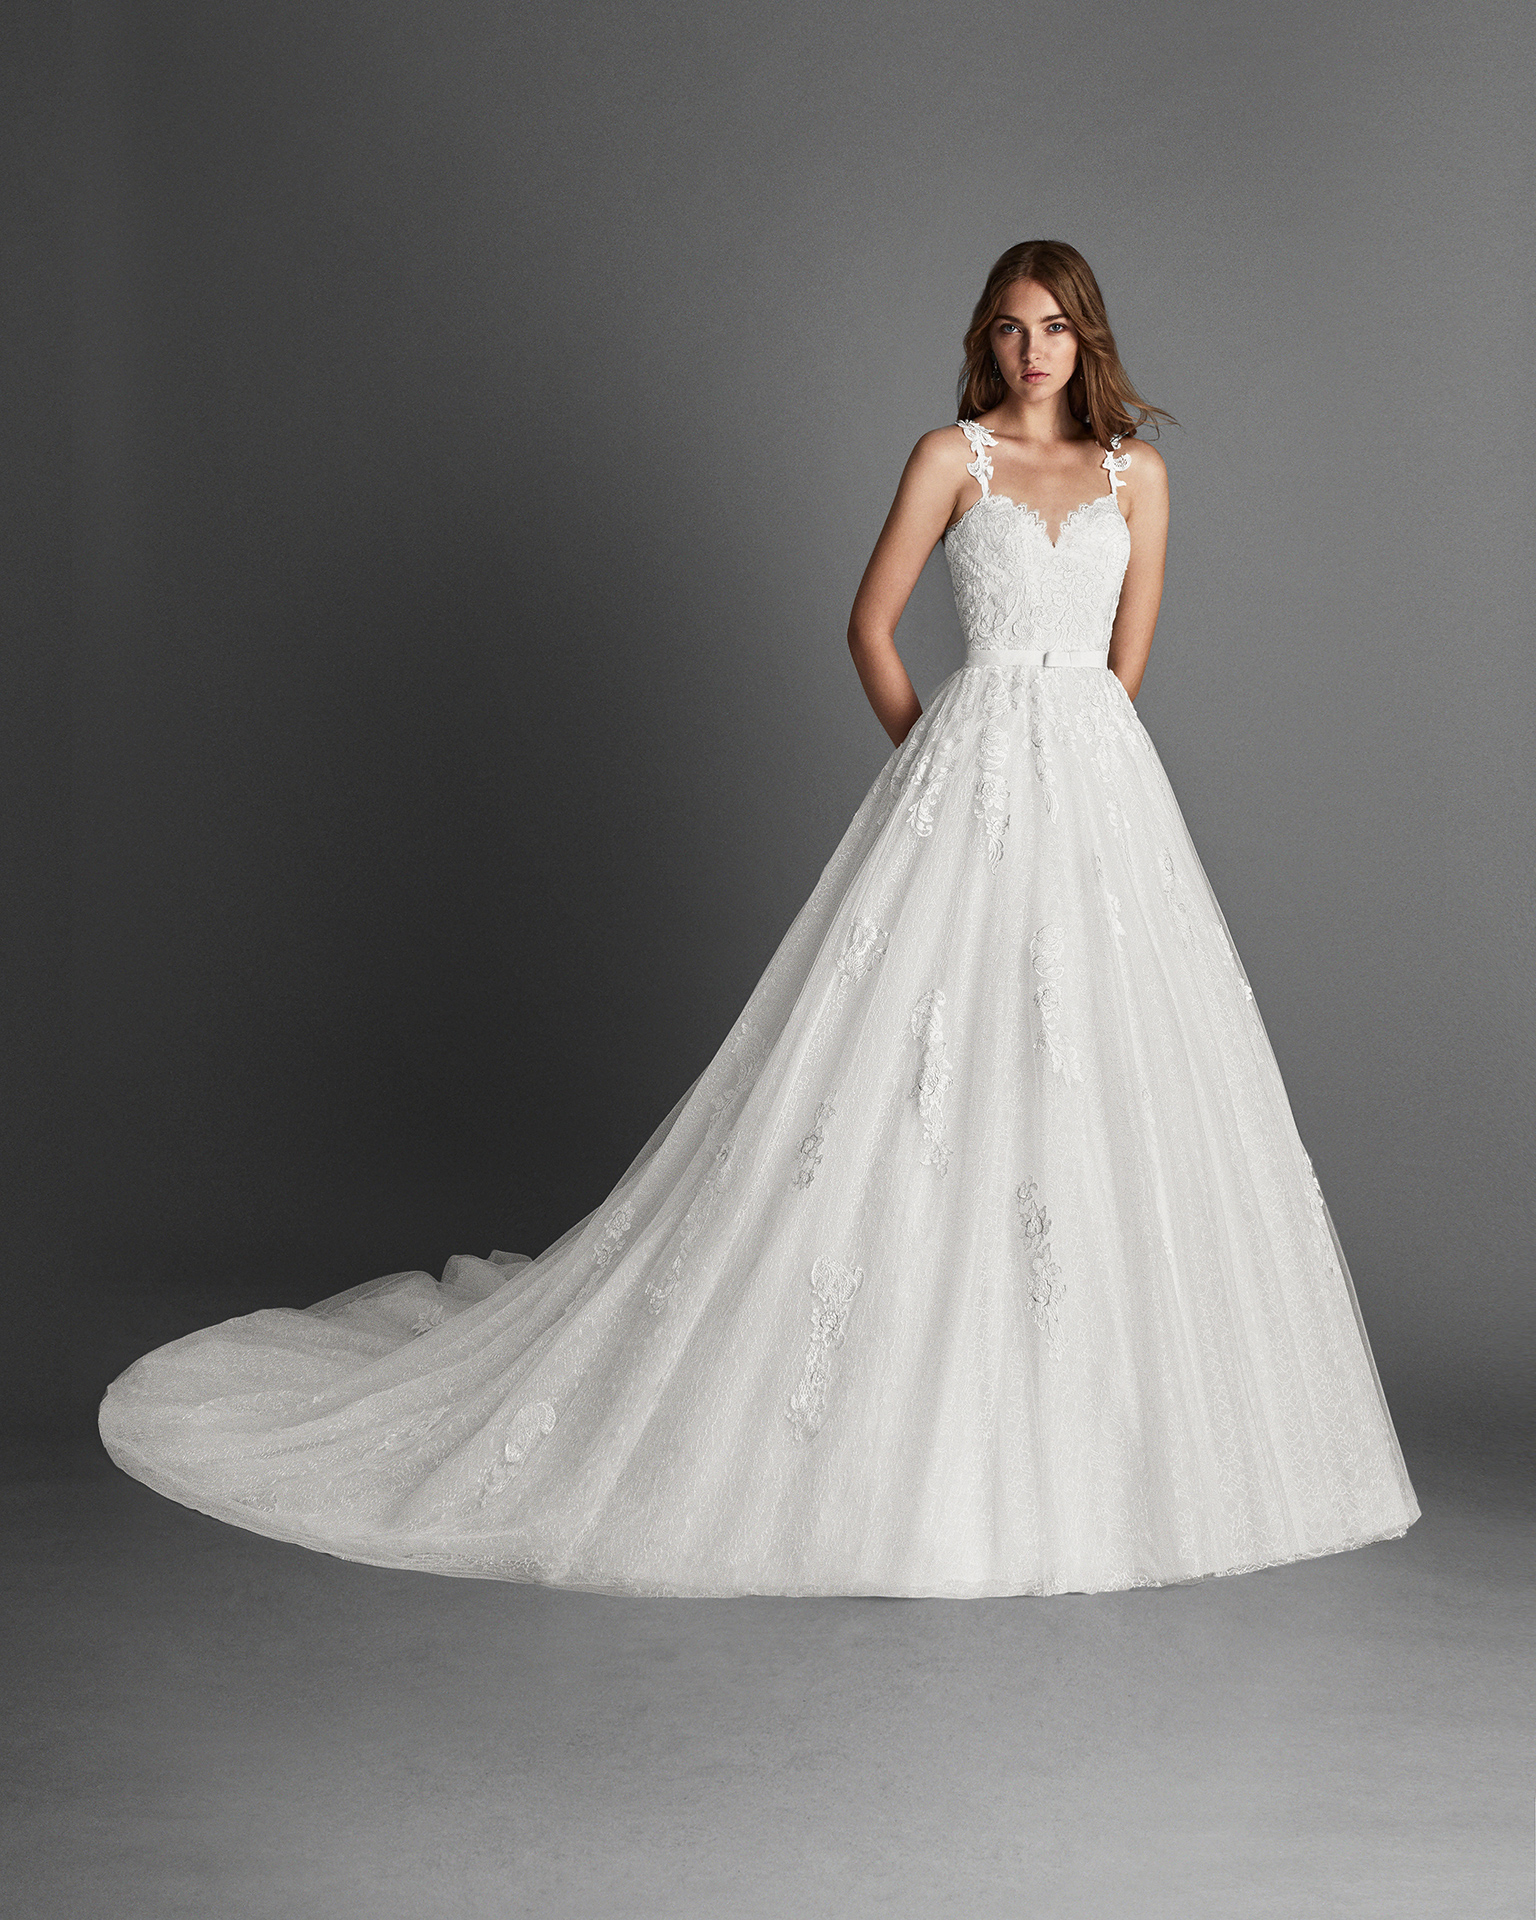 Princess-style lace and tulle wedding dress with sweetheart neckline and low back with beadwork detail.